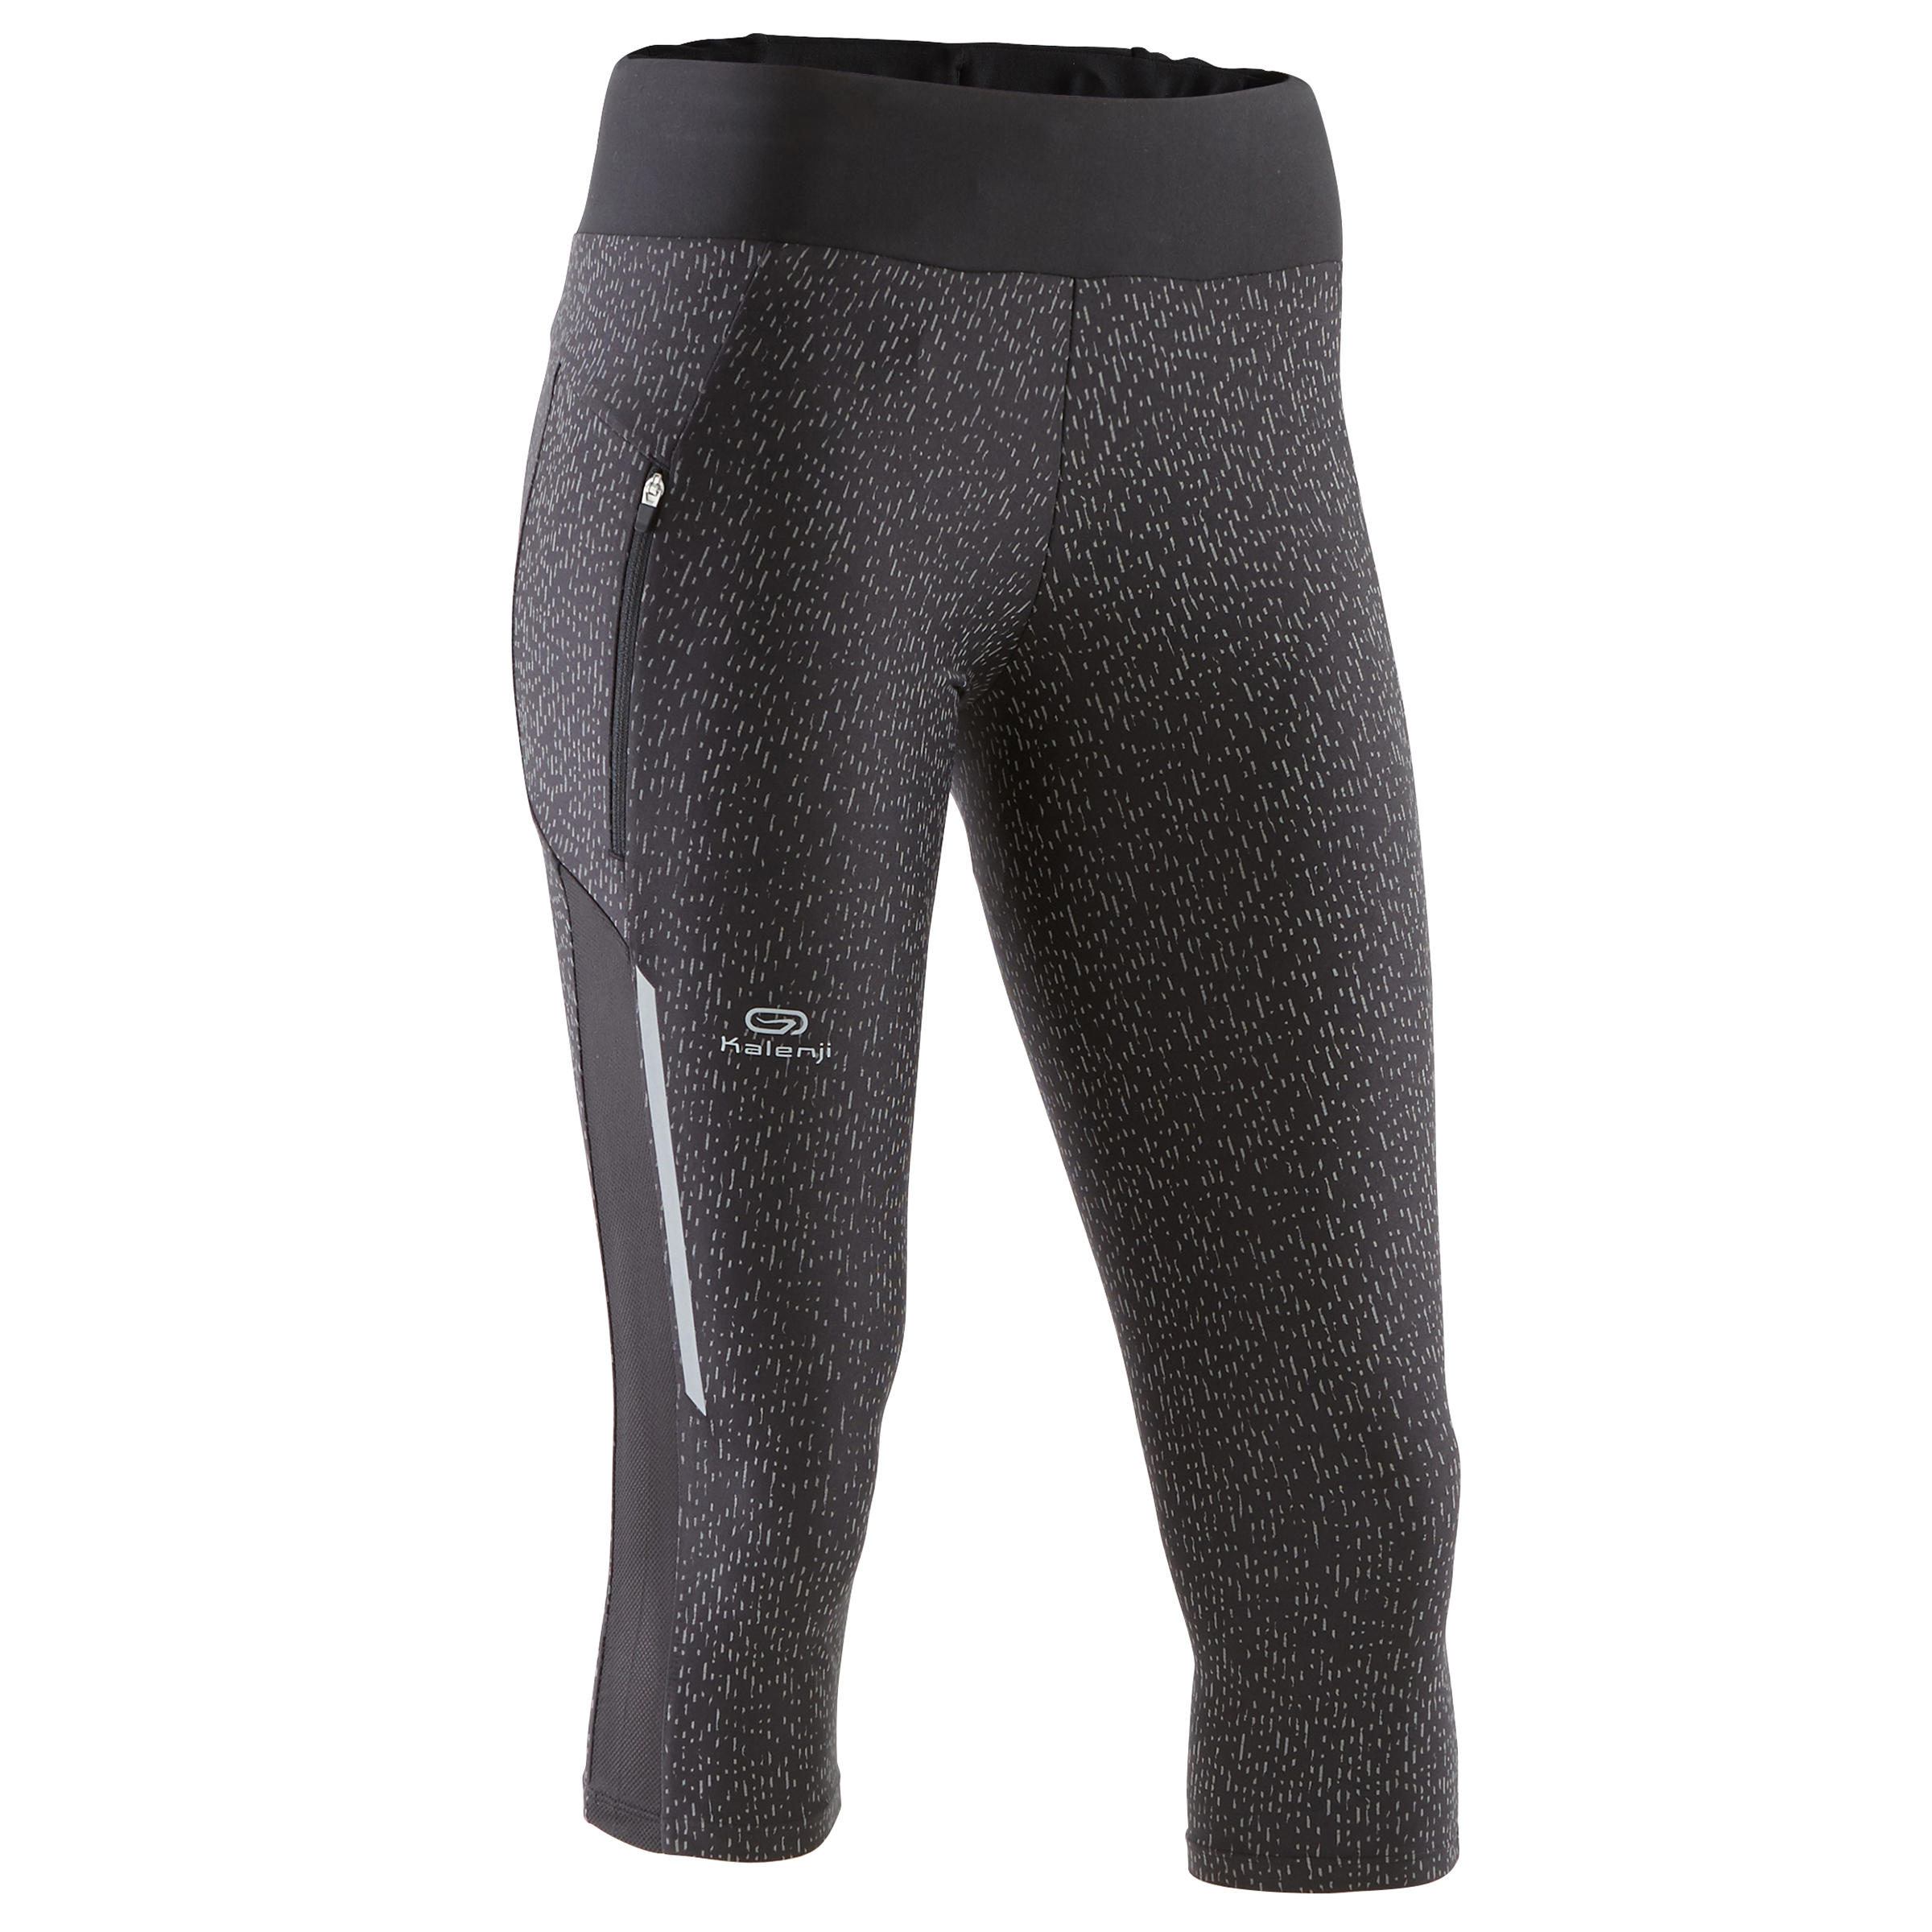 LEGGINGS 3/4 JOGGING MUJER RUN DRY+ REFLECT NEGRO